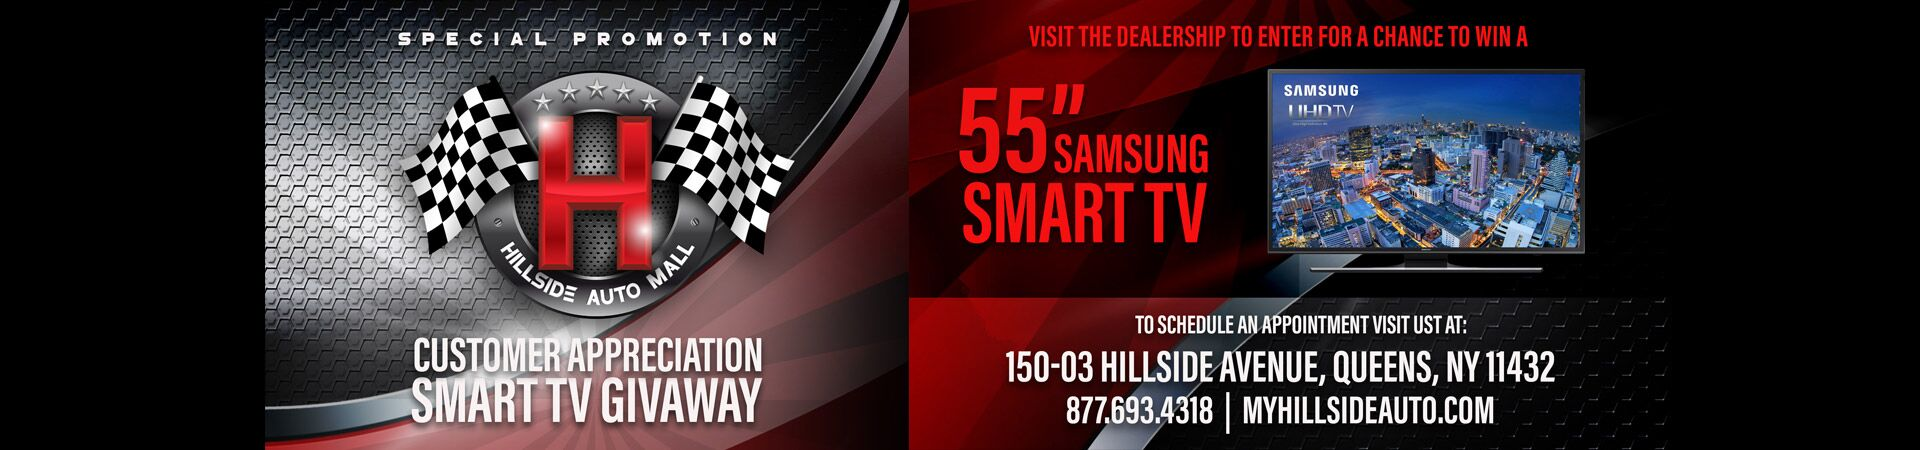 Customer Appreciation Smart TV Giveaway